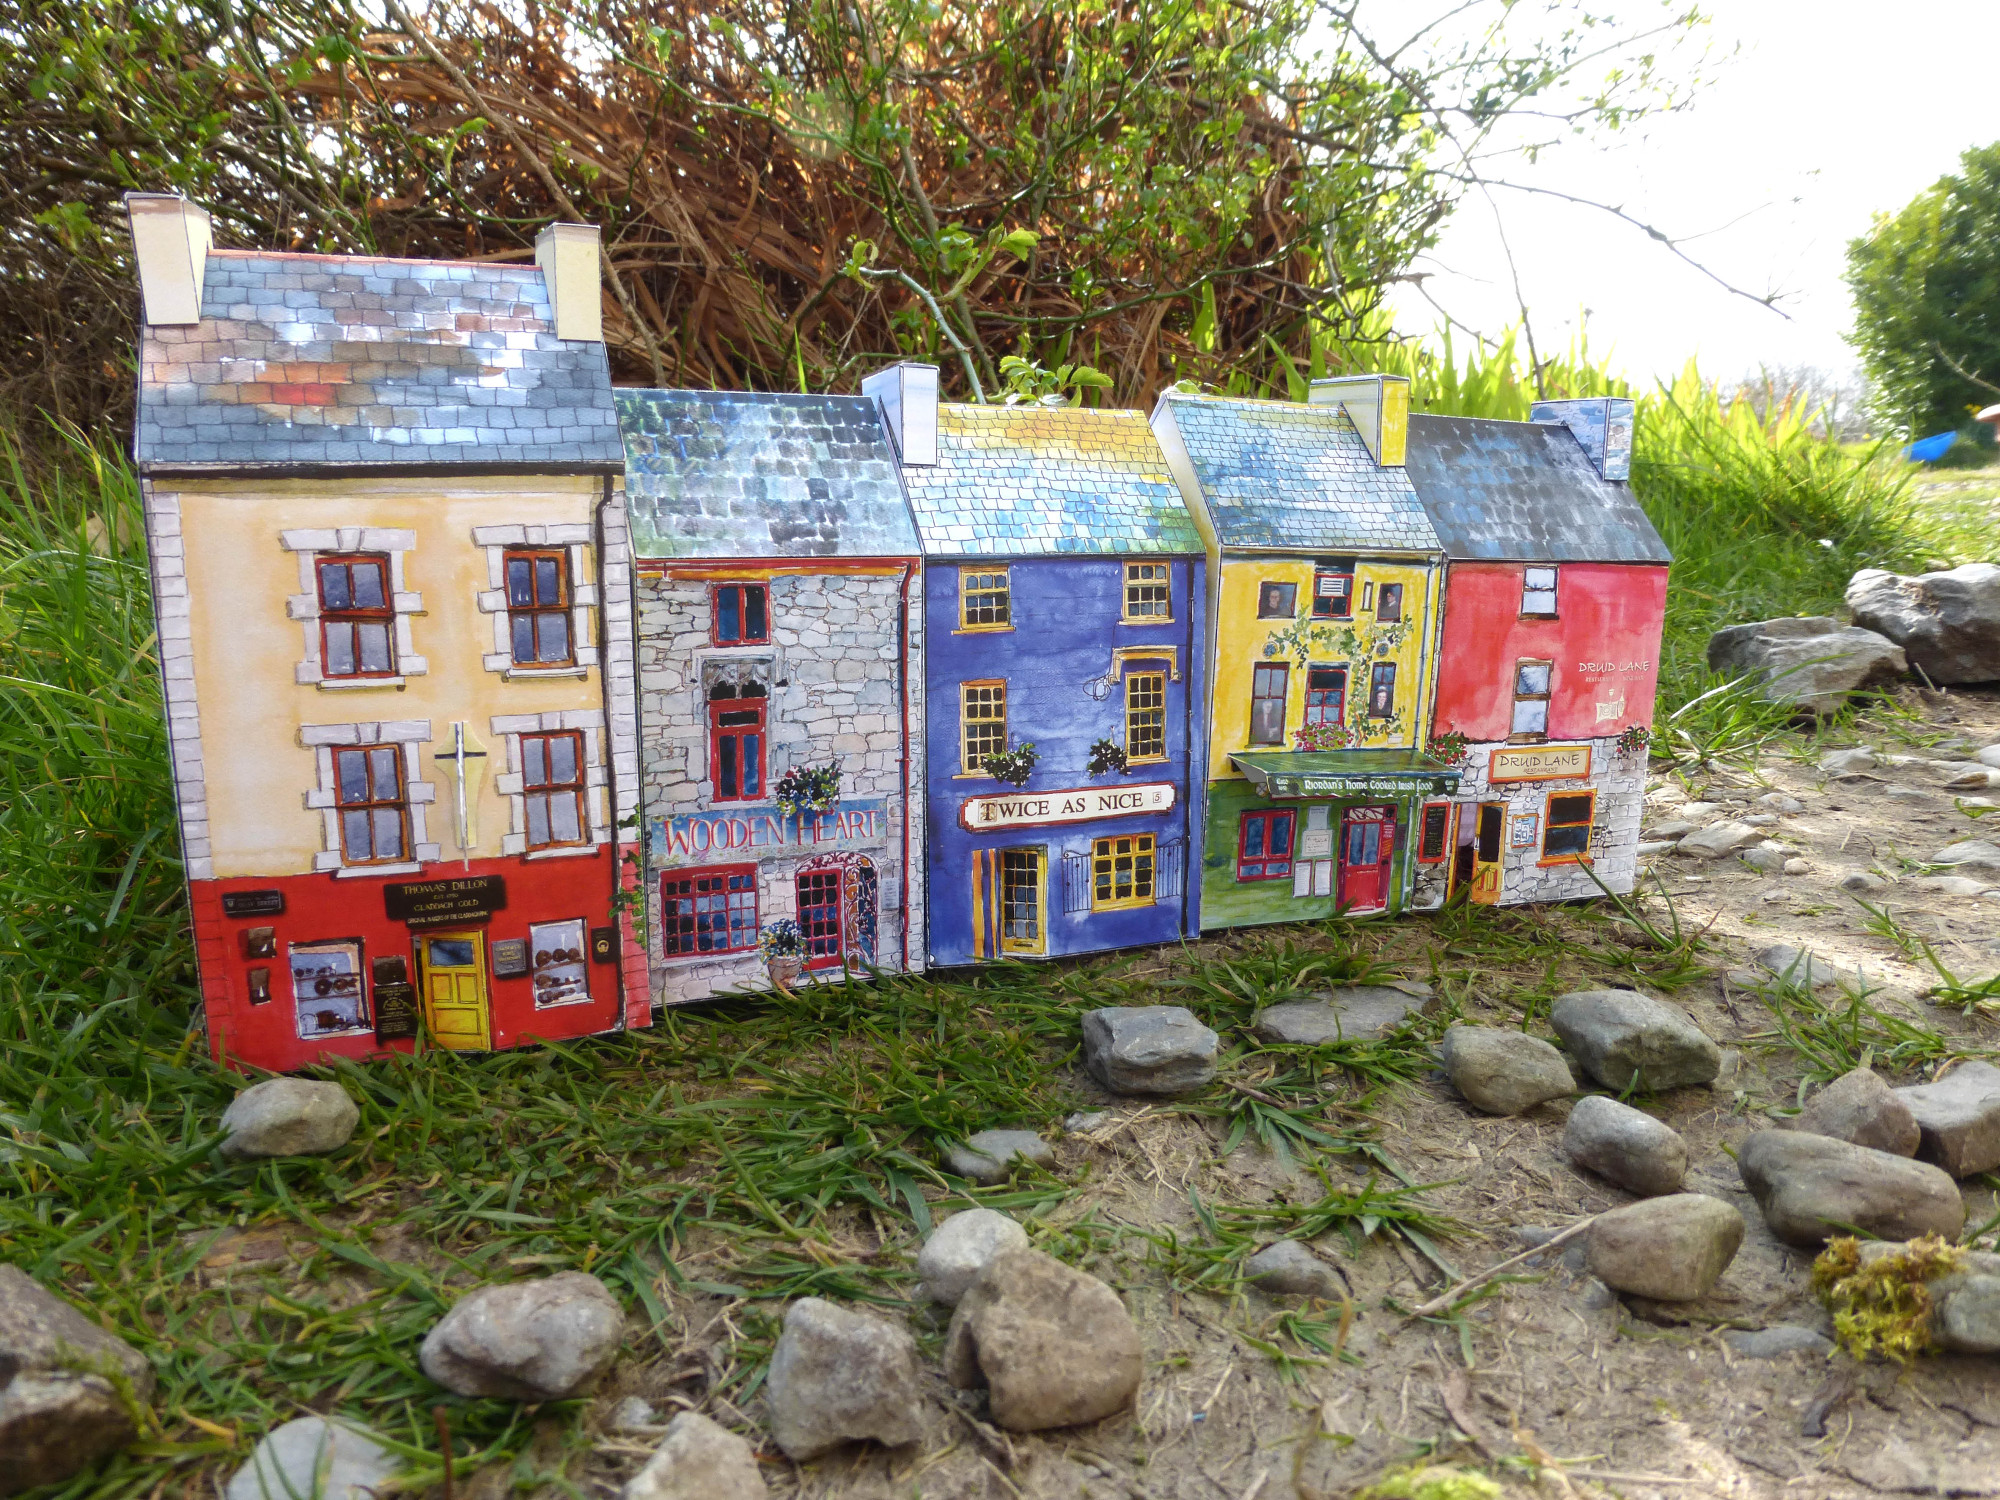 A model kit of Tiny Galway.